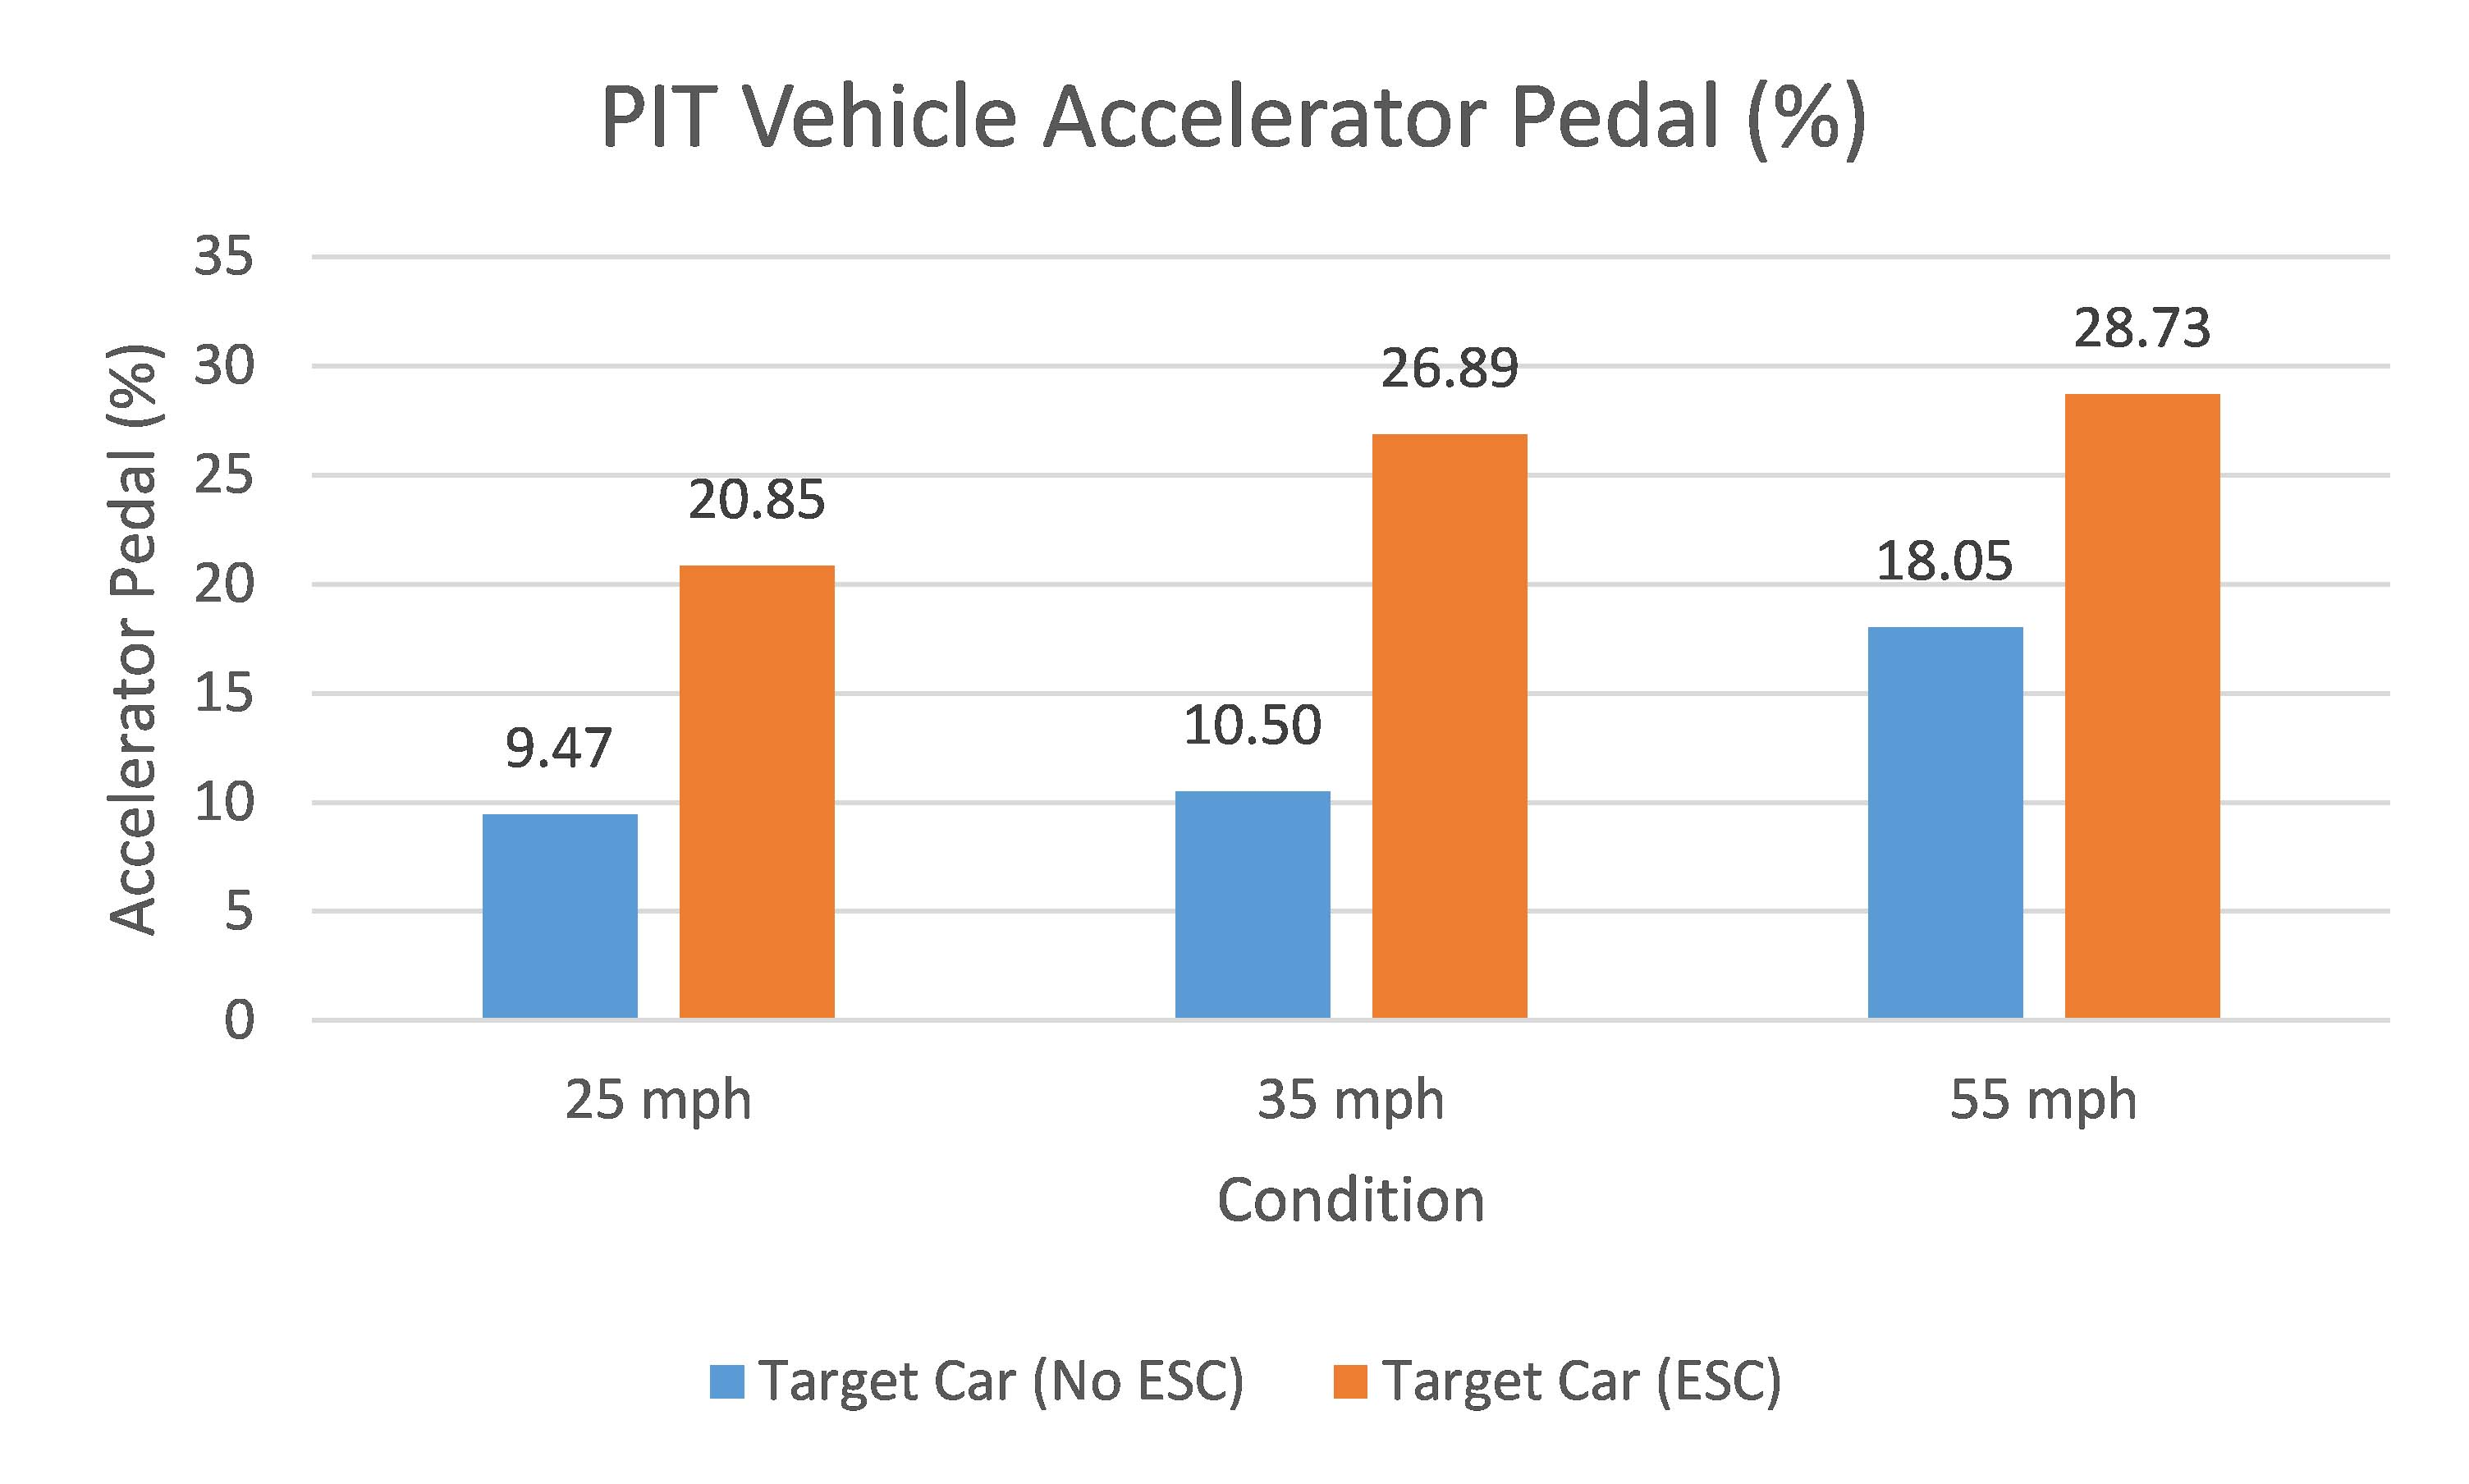 PIT Vehicle Accelerator Pedal Graph